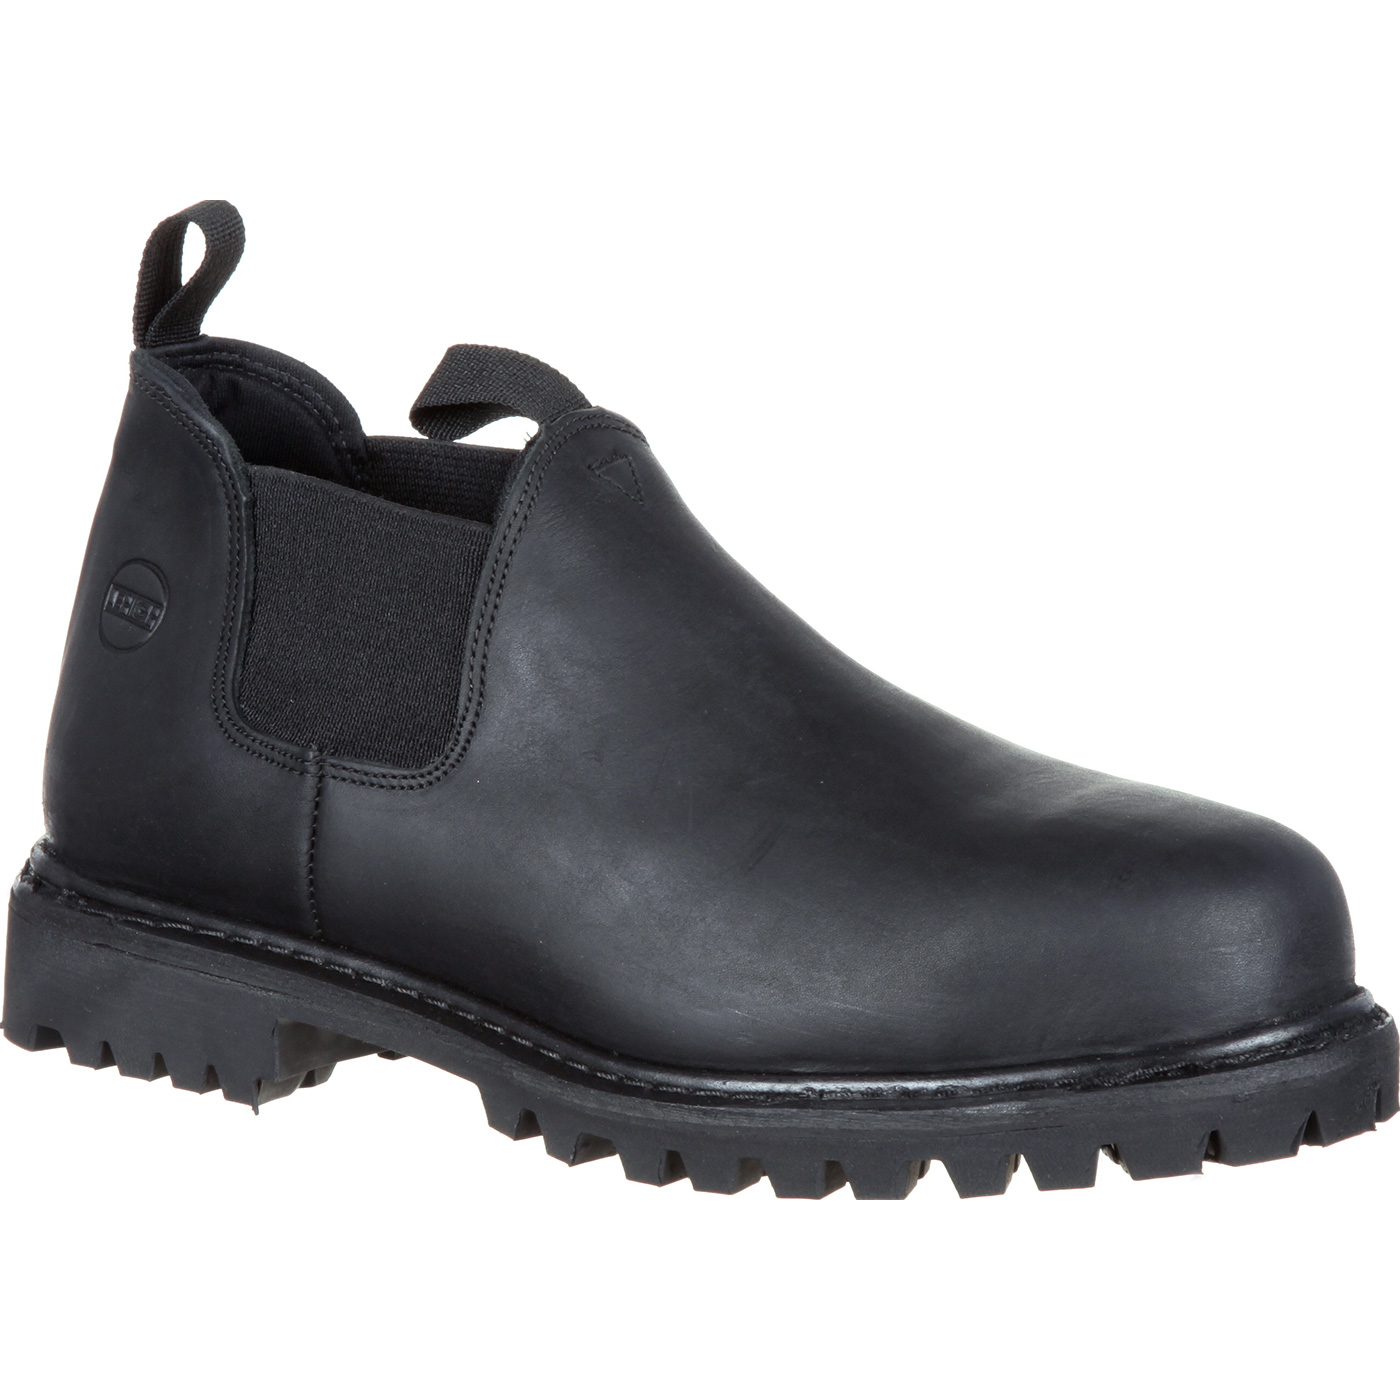 9b831d25ae43 Image is loading Lehigh-Safety-Shoes-Steel-Toe-Work-Romeo-Made-